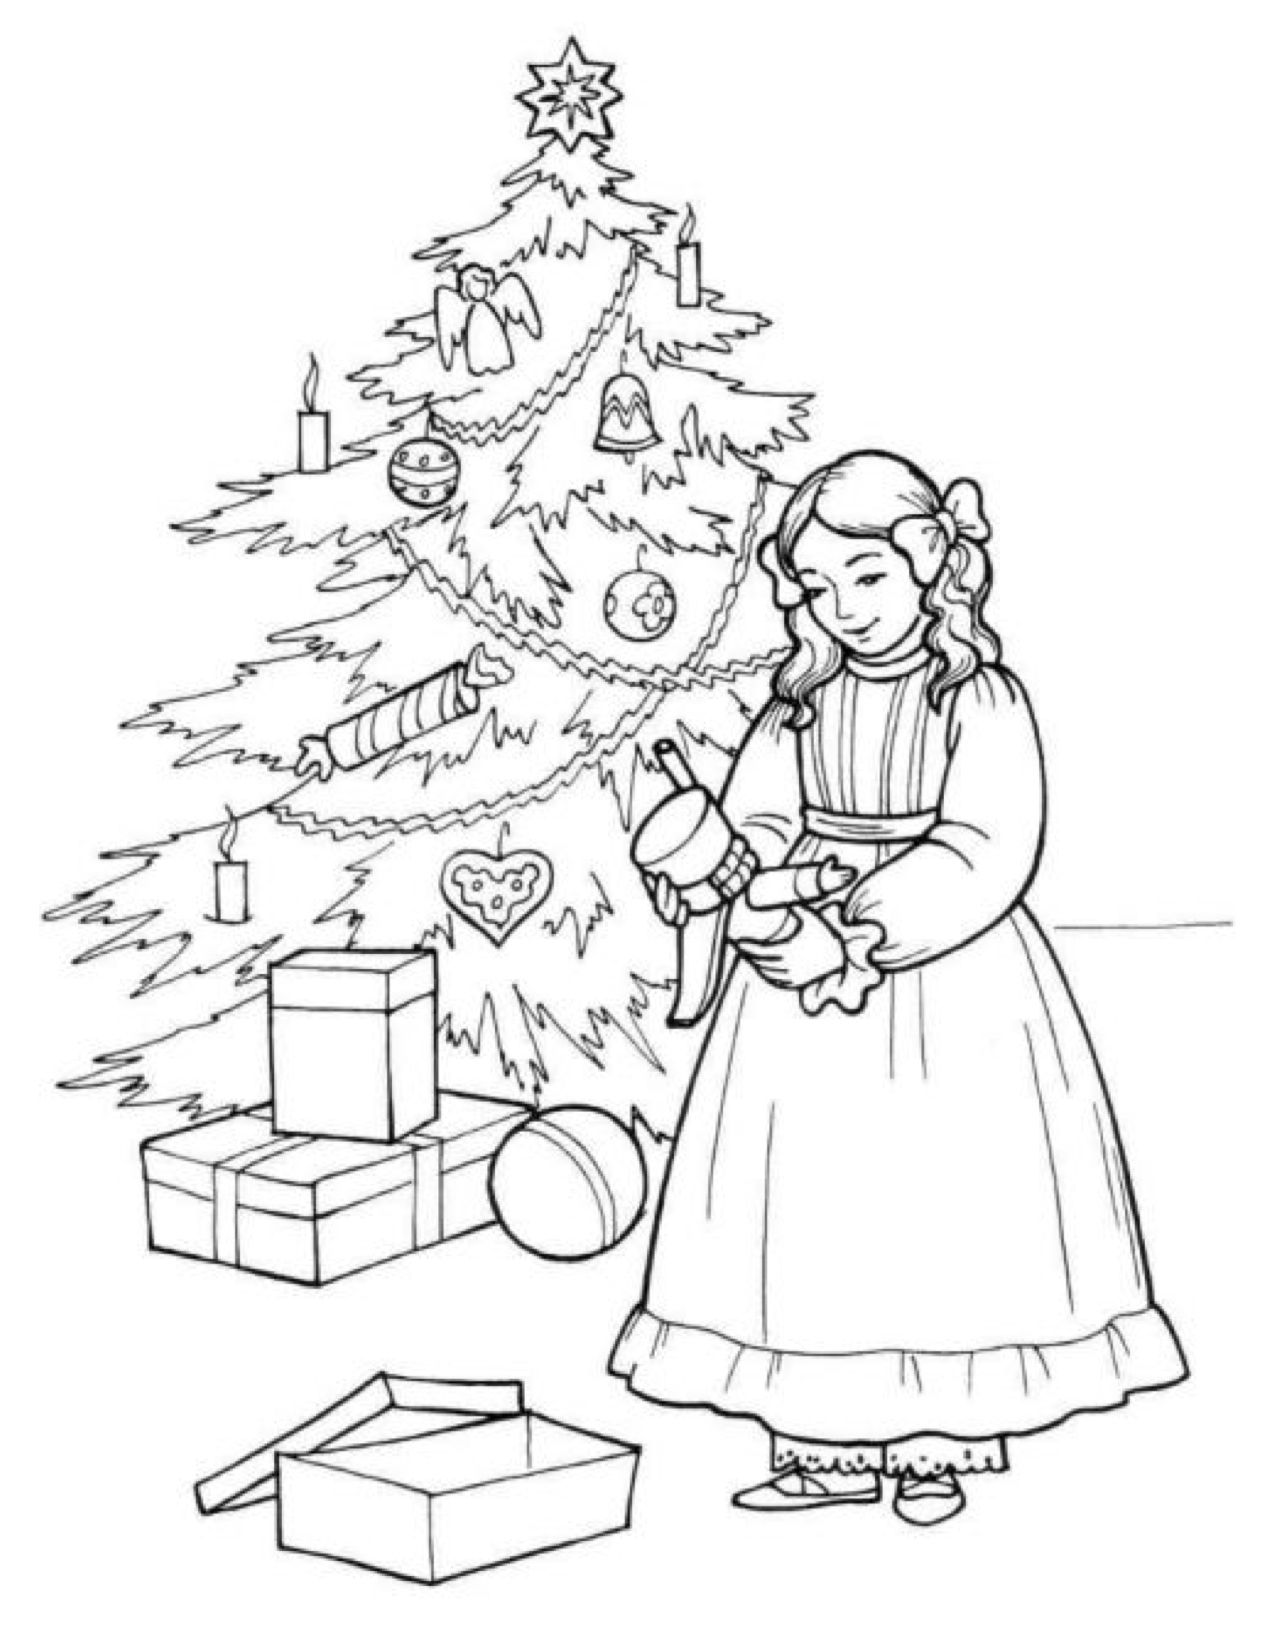 Clara Nutcracker Coloring Page Dance Coloring Pages Tree Coloring Page Christmas Colors